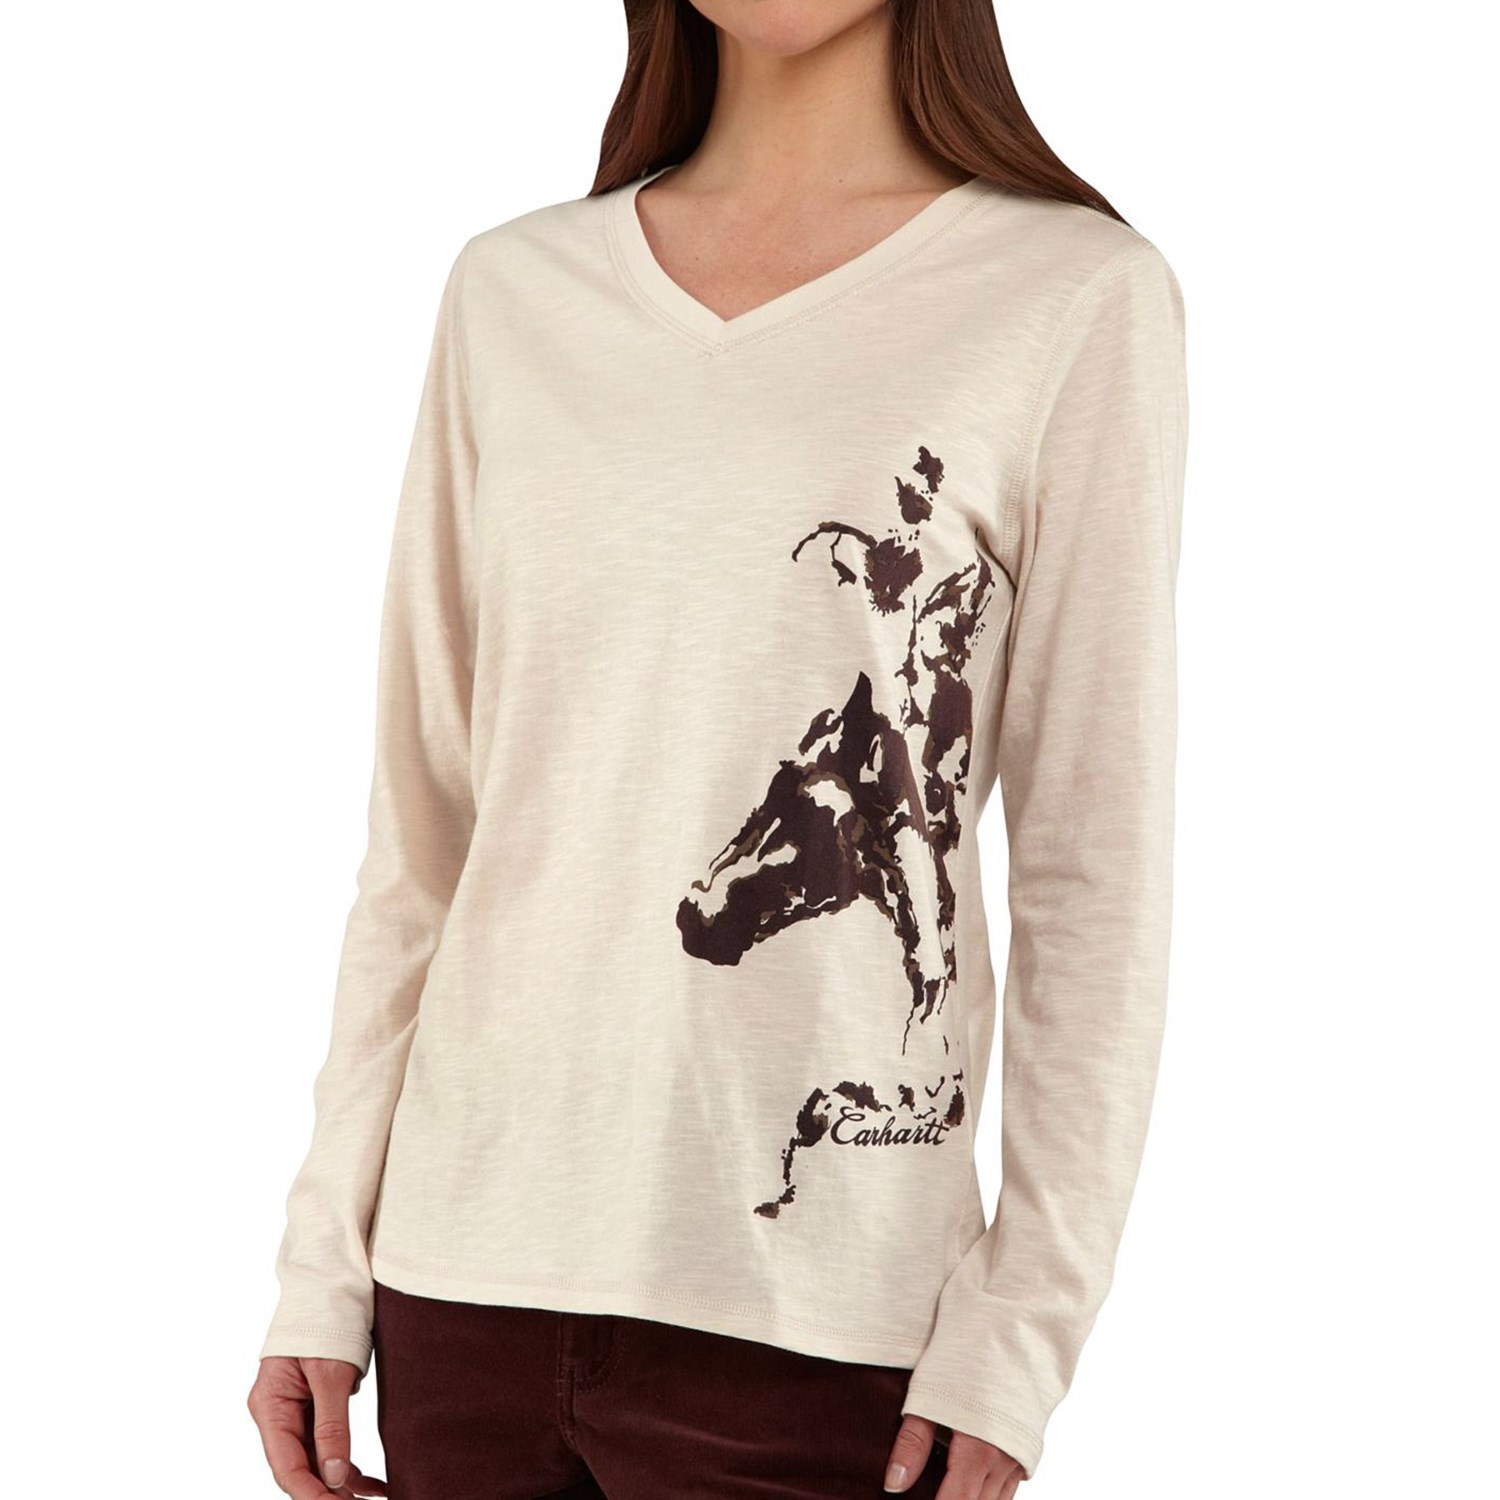 Carhartt briarwood v neck t shirt long sleeve for women for Carhartt long sleeve t shirts white